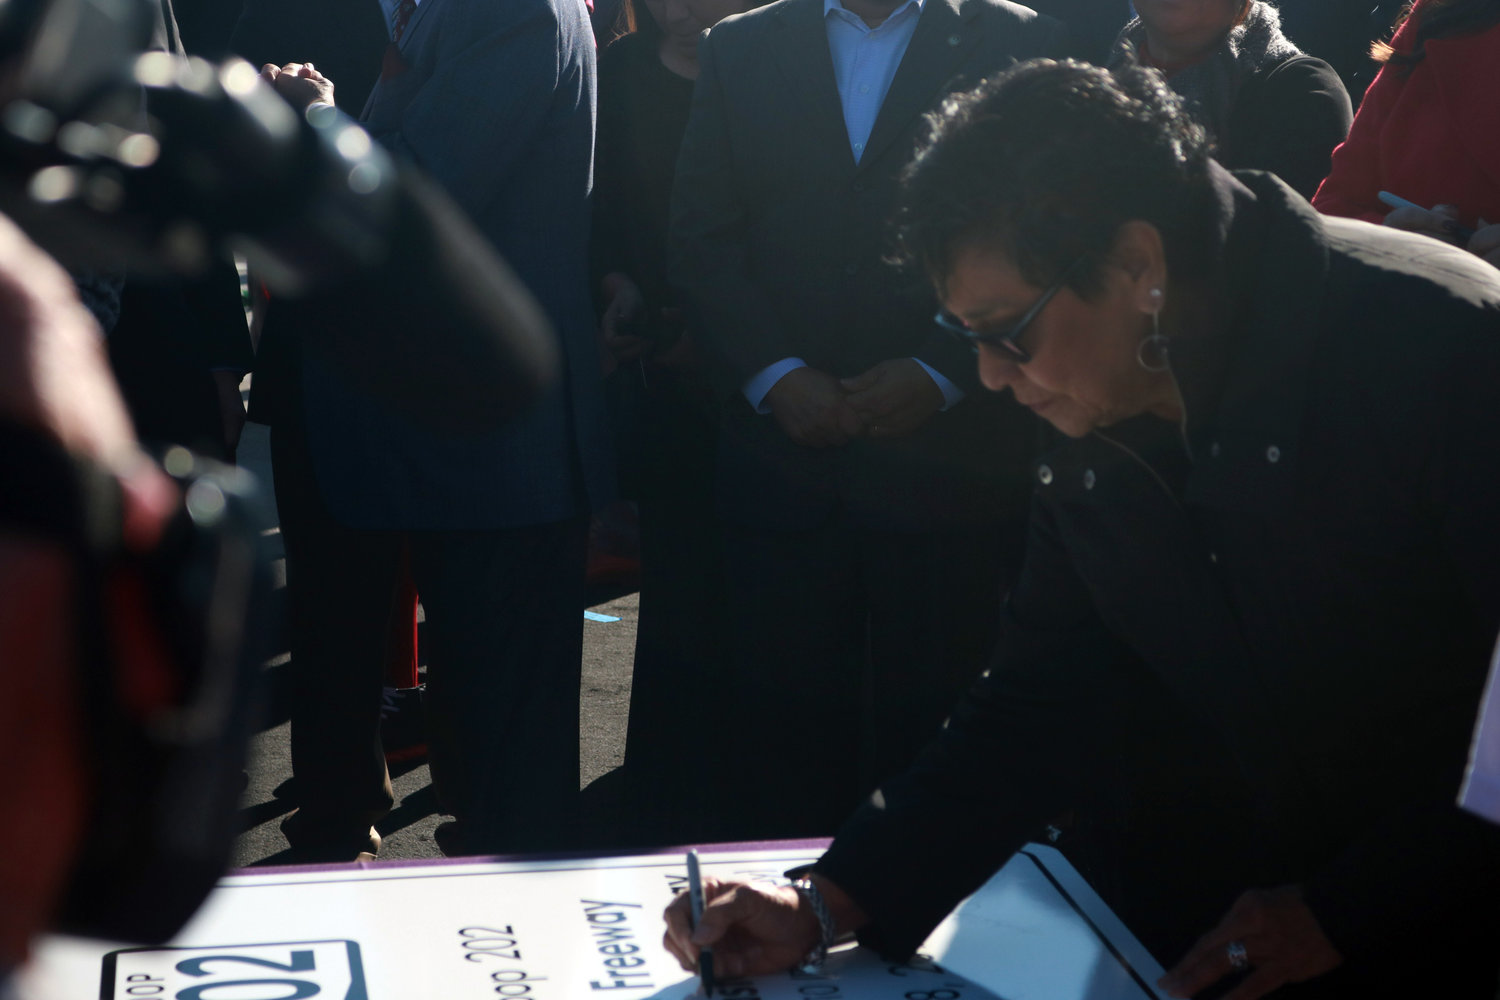 Verma Pastor, wife of late U.S. Congressman Ed Pastor, autographs a sign during the kickoff of the Loop 202 South Mountain Freeway.